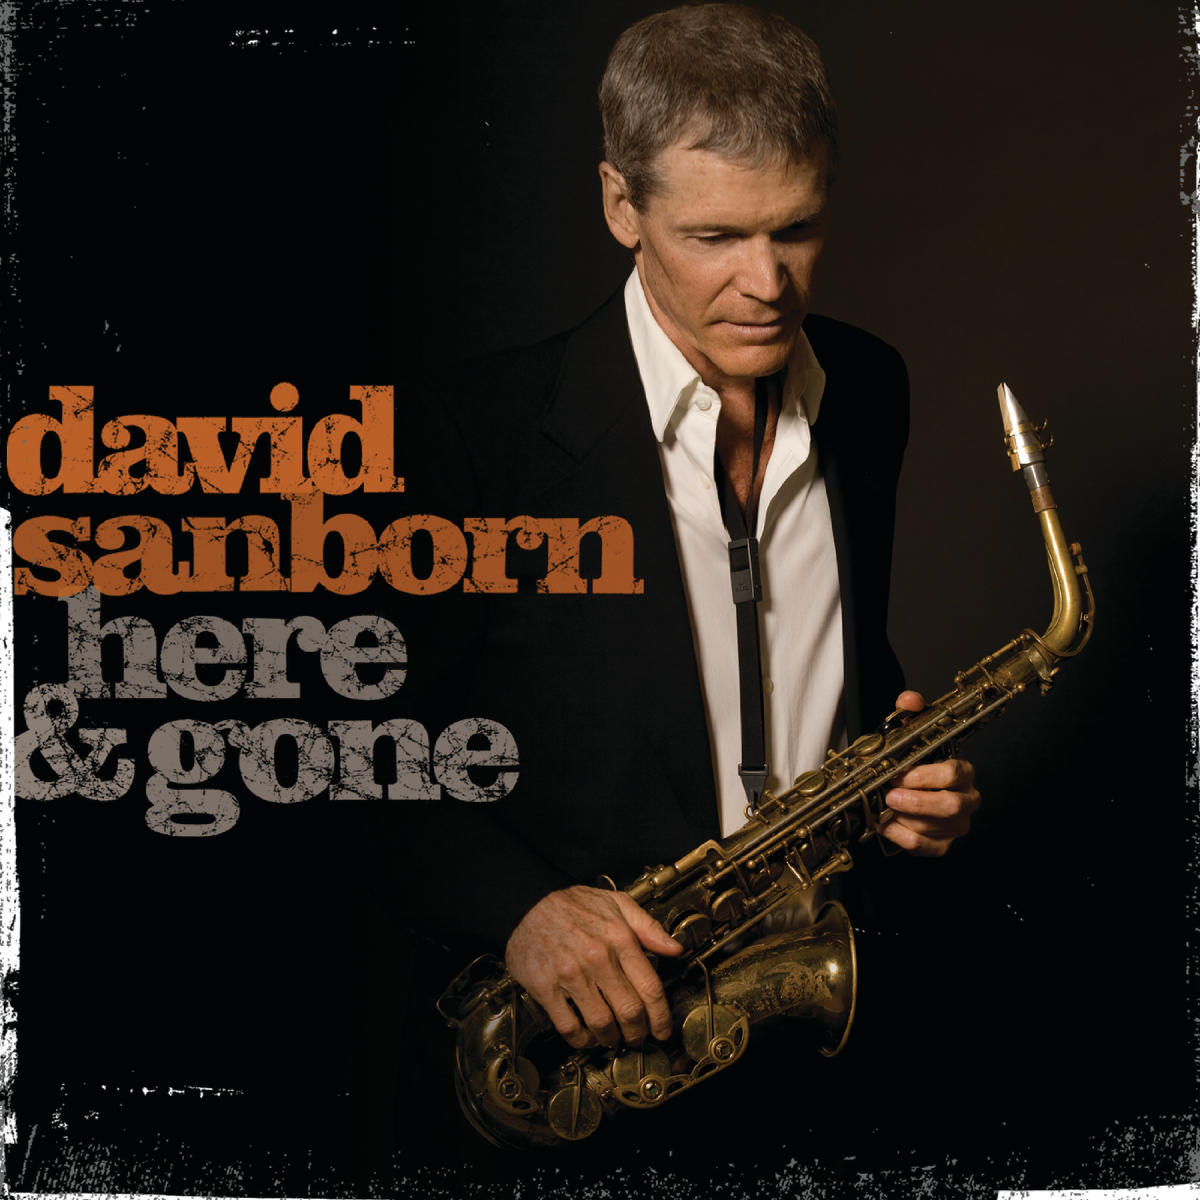 I'm Gonna Move to the Outskirts of Town (feat. Eric Clapton) by David Sanborn, Eric Clapton